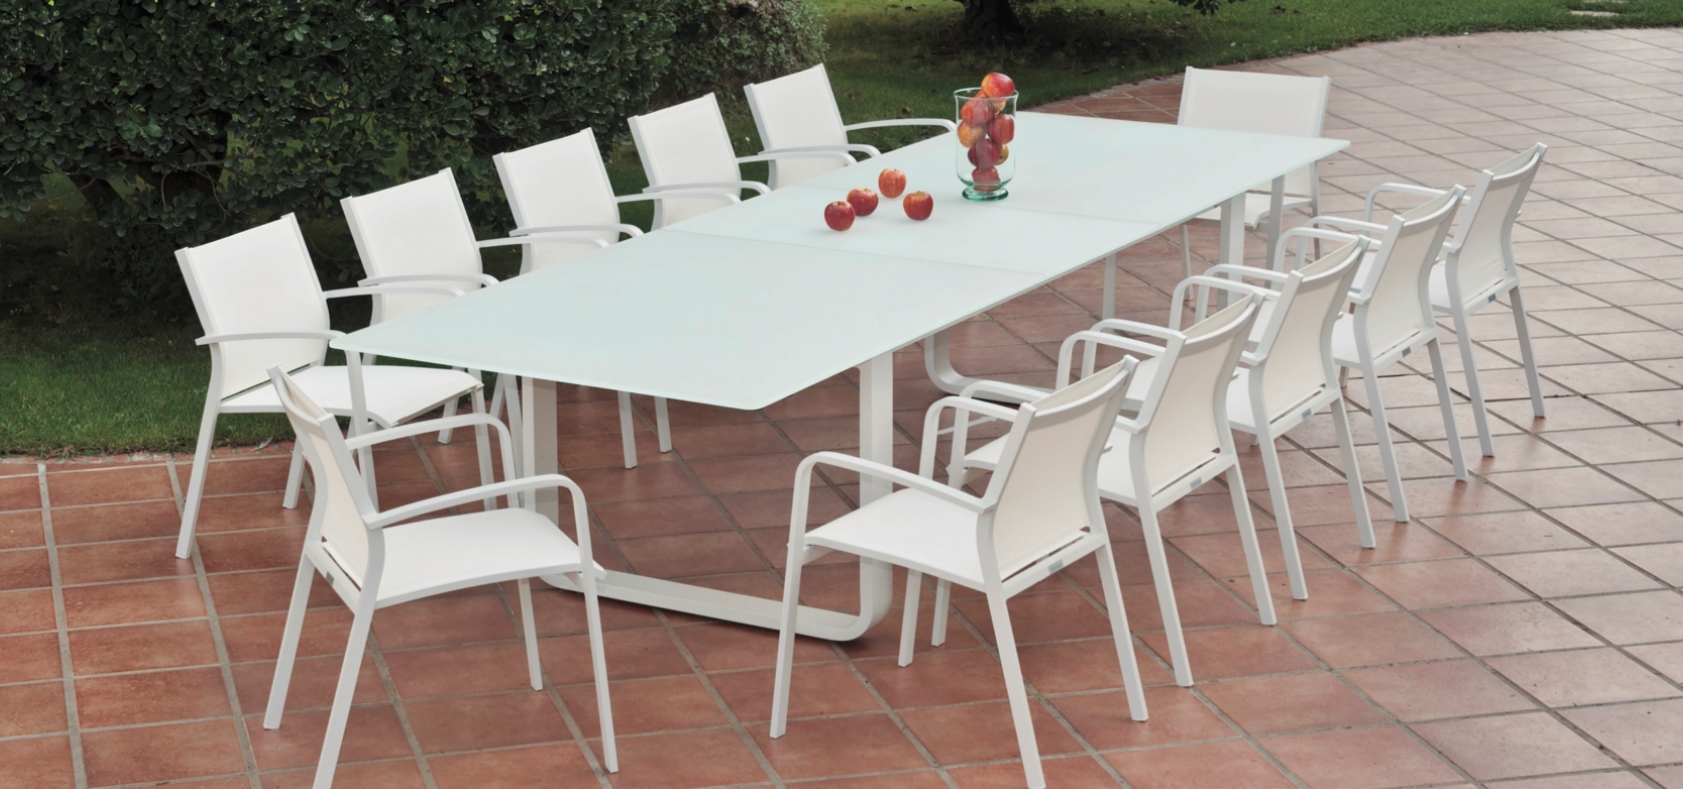 Outdoor Extendable Dining Tables Regarding 2018 Averon Transitional White Glass Extendable Dining Table (View 8 of 25)